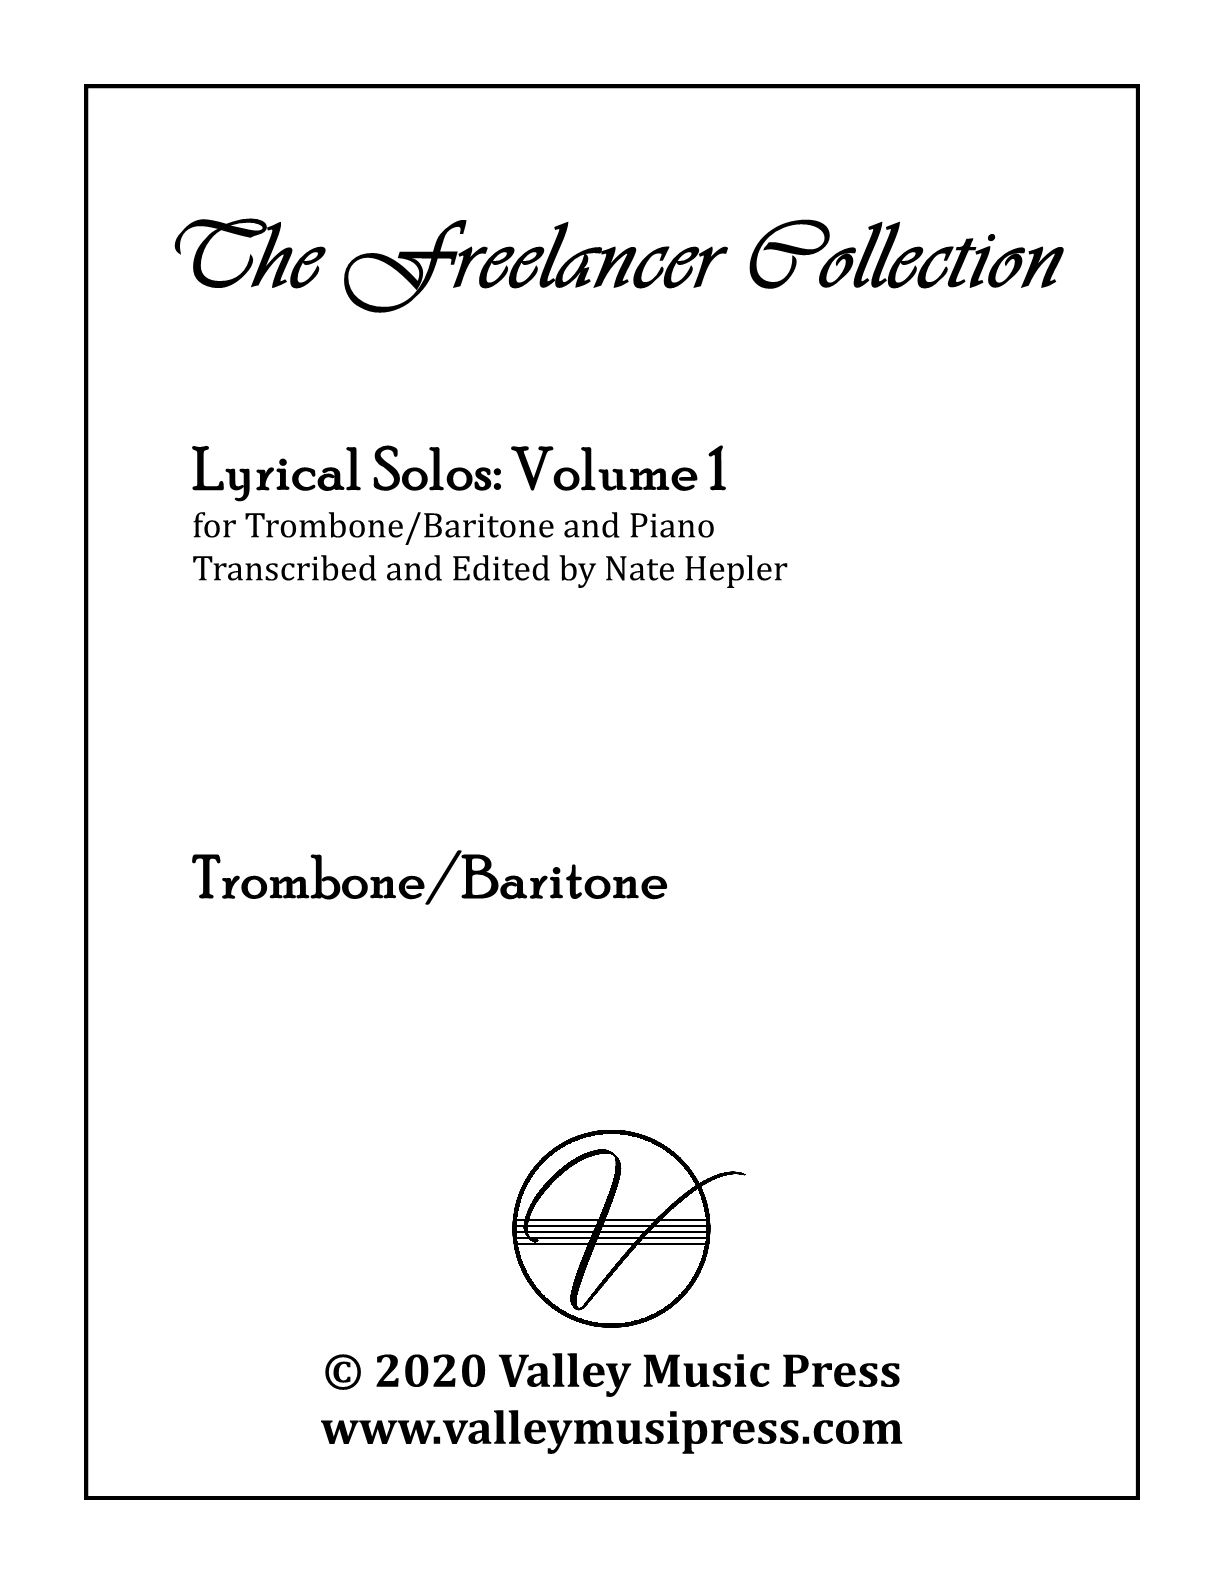 Hepler - Freelancer Collection Lyrical Solos Vol 1 (Trp & Piano)